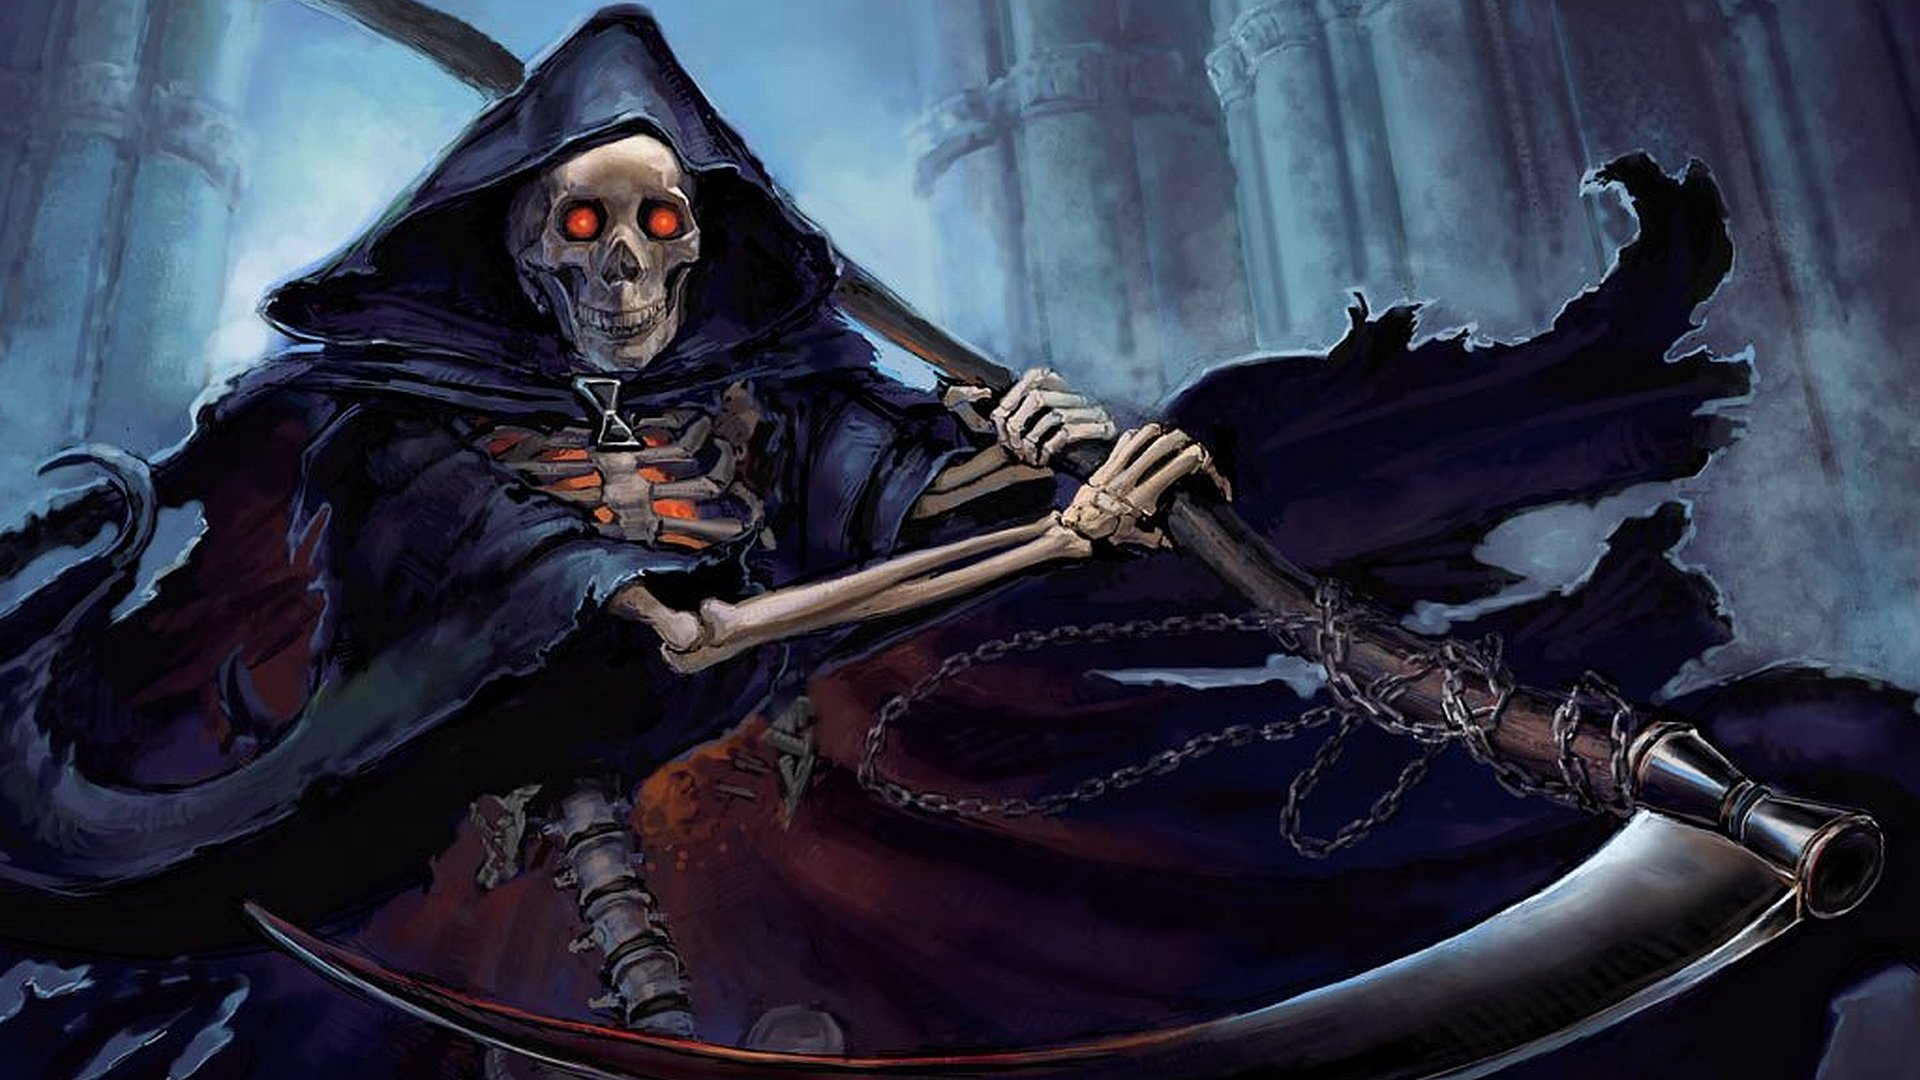 Scary Grim Reaper Wallpaper Hd Grim reaper wallpaper 1920x1080